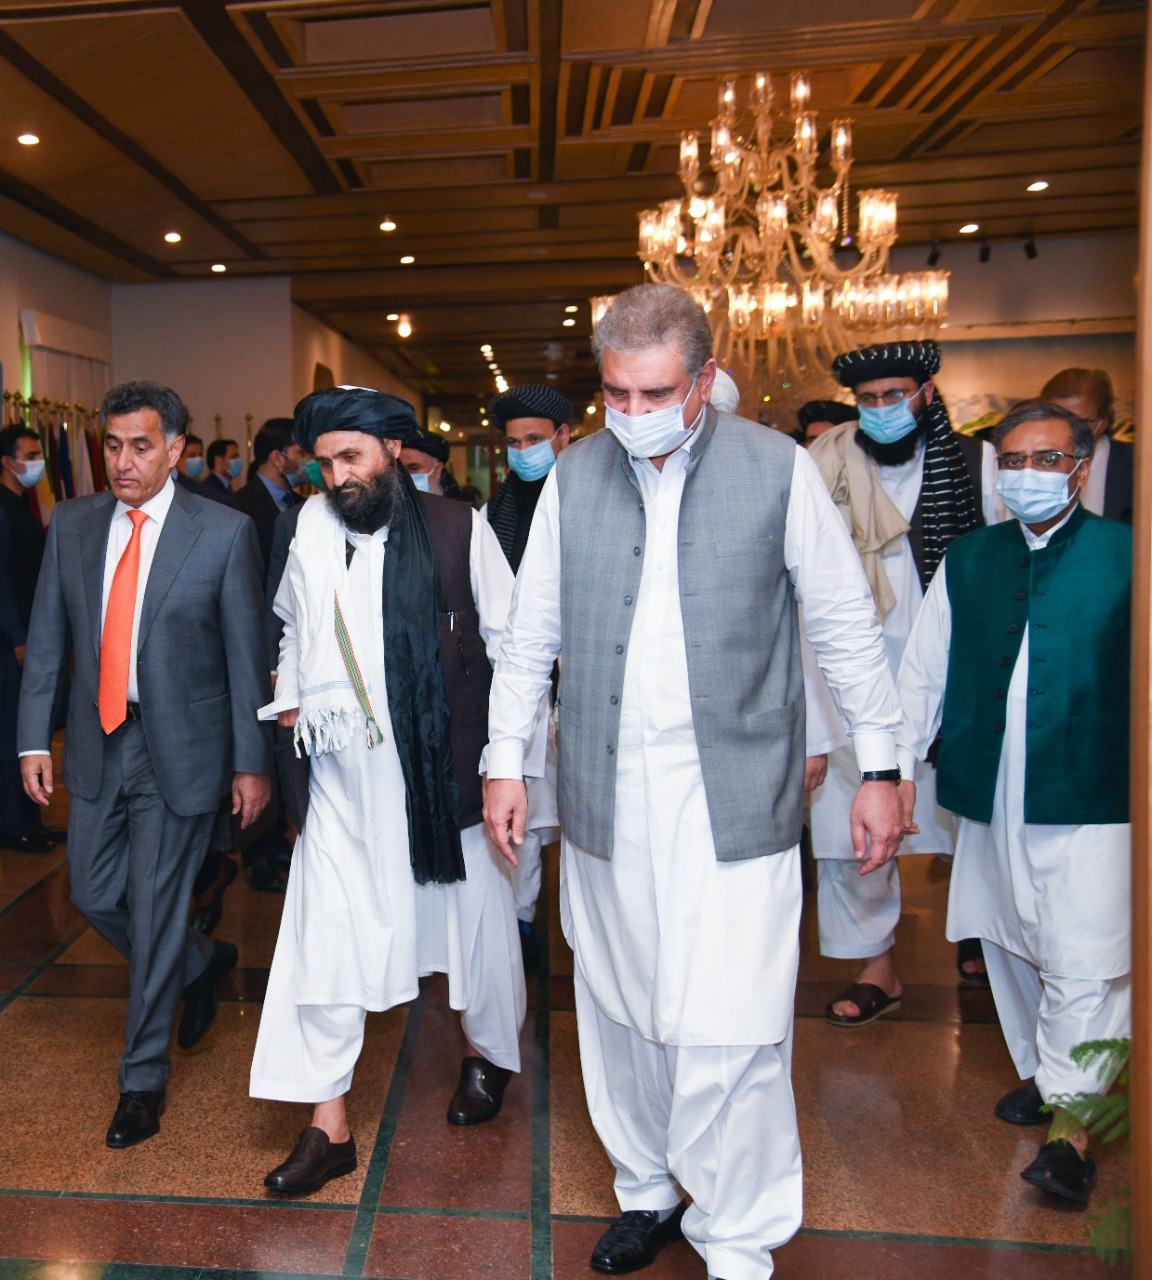 Tali-Banned: Pakistan Ridiculed for Inviting Taliban Leaders to Conference Just Days After Announcing Terror Travel Ban